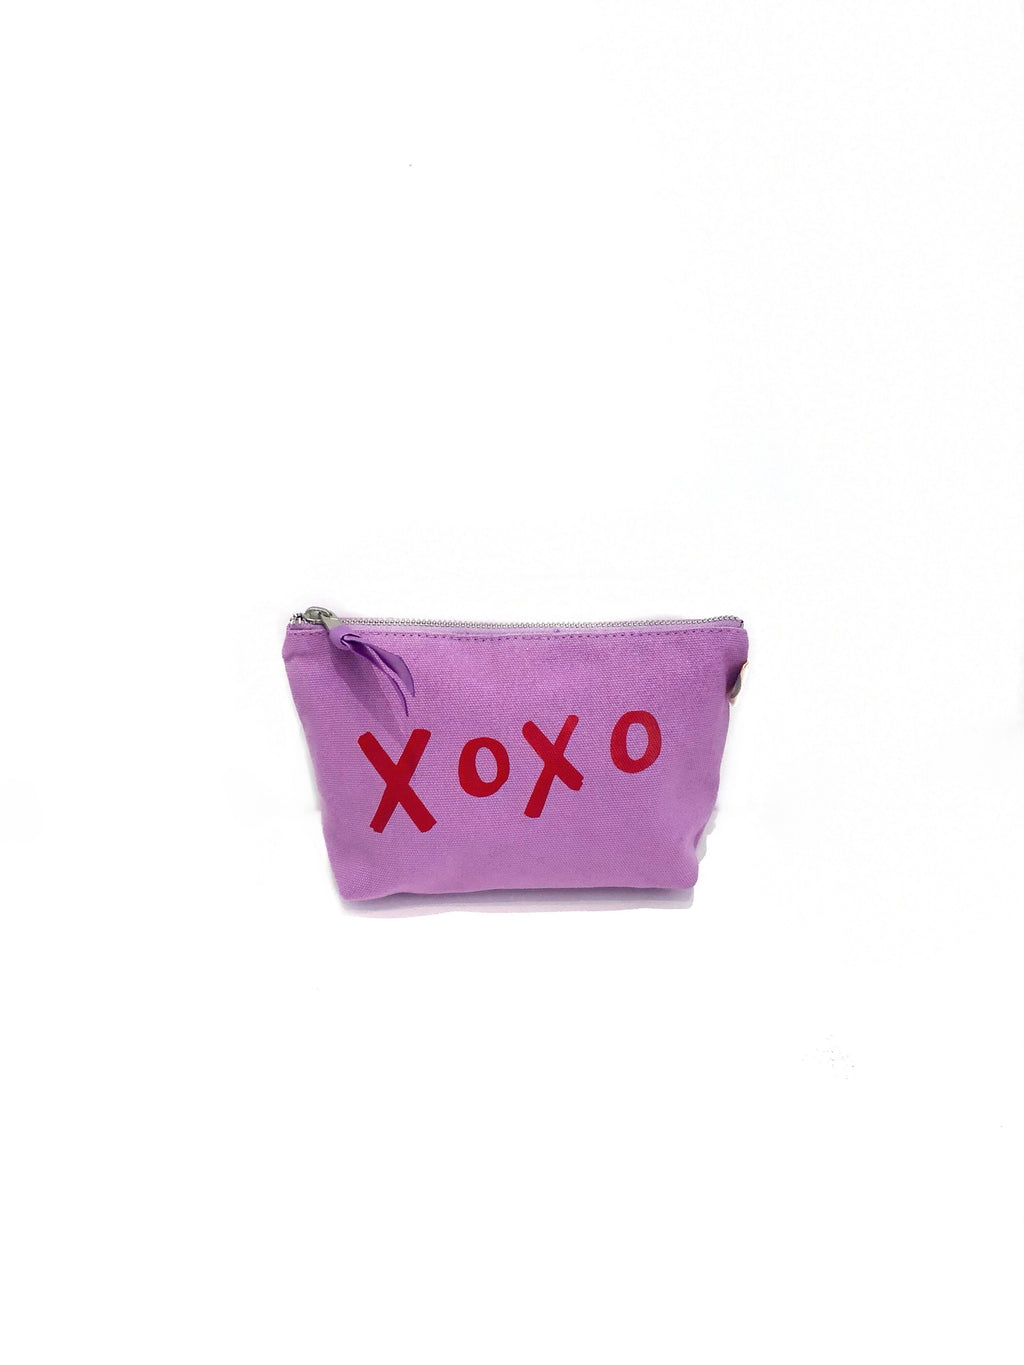 Makeup Bag Lavendar Xoxo (4919874224199)